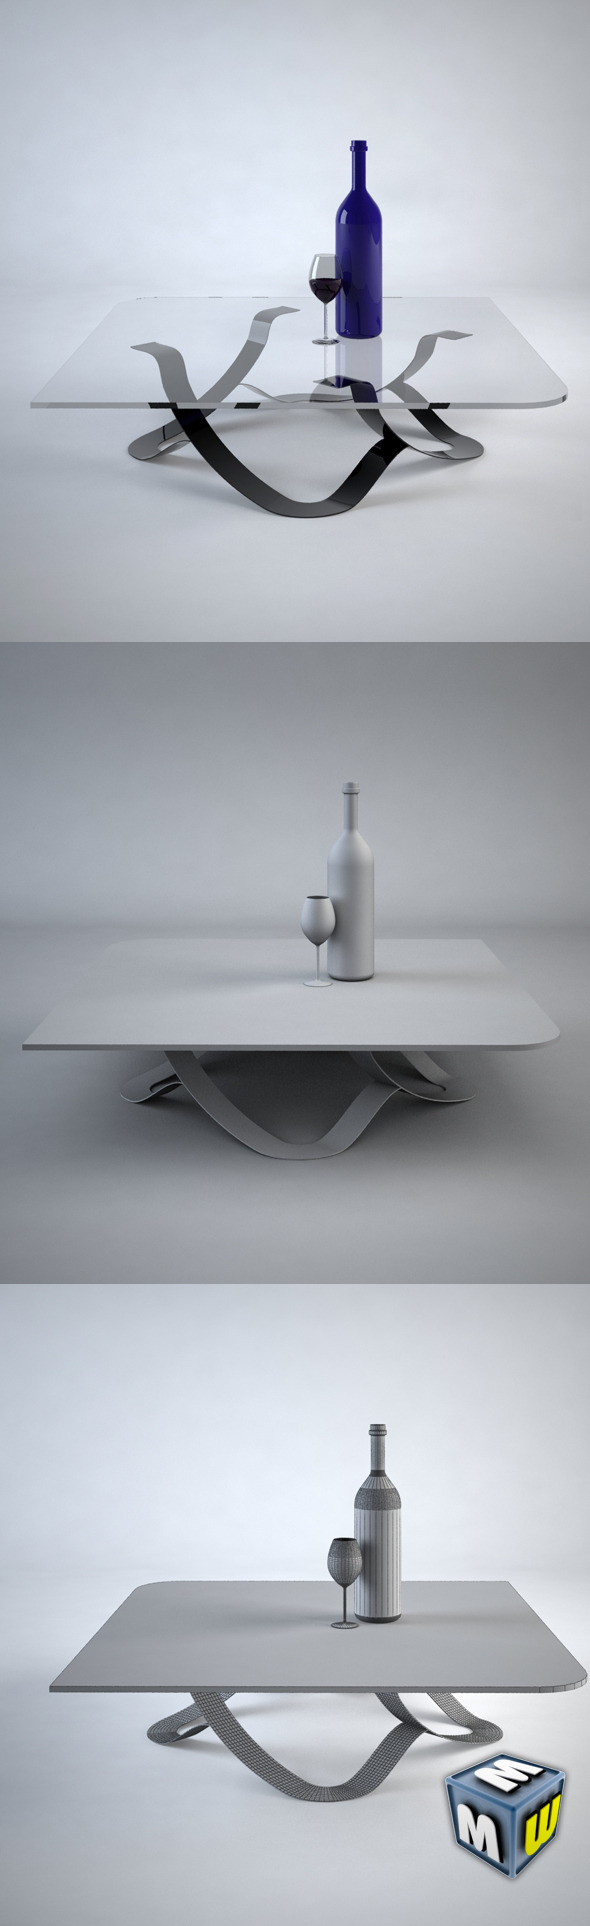 Coffe Table 1 Max 2011 - 3DOcean Item for Sale